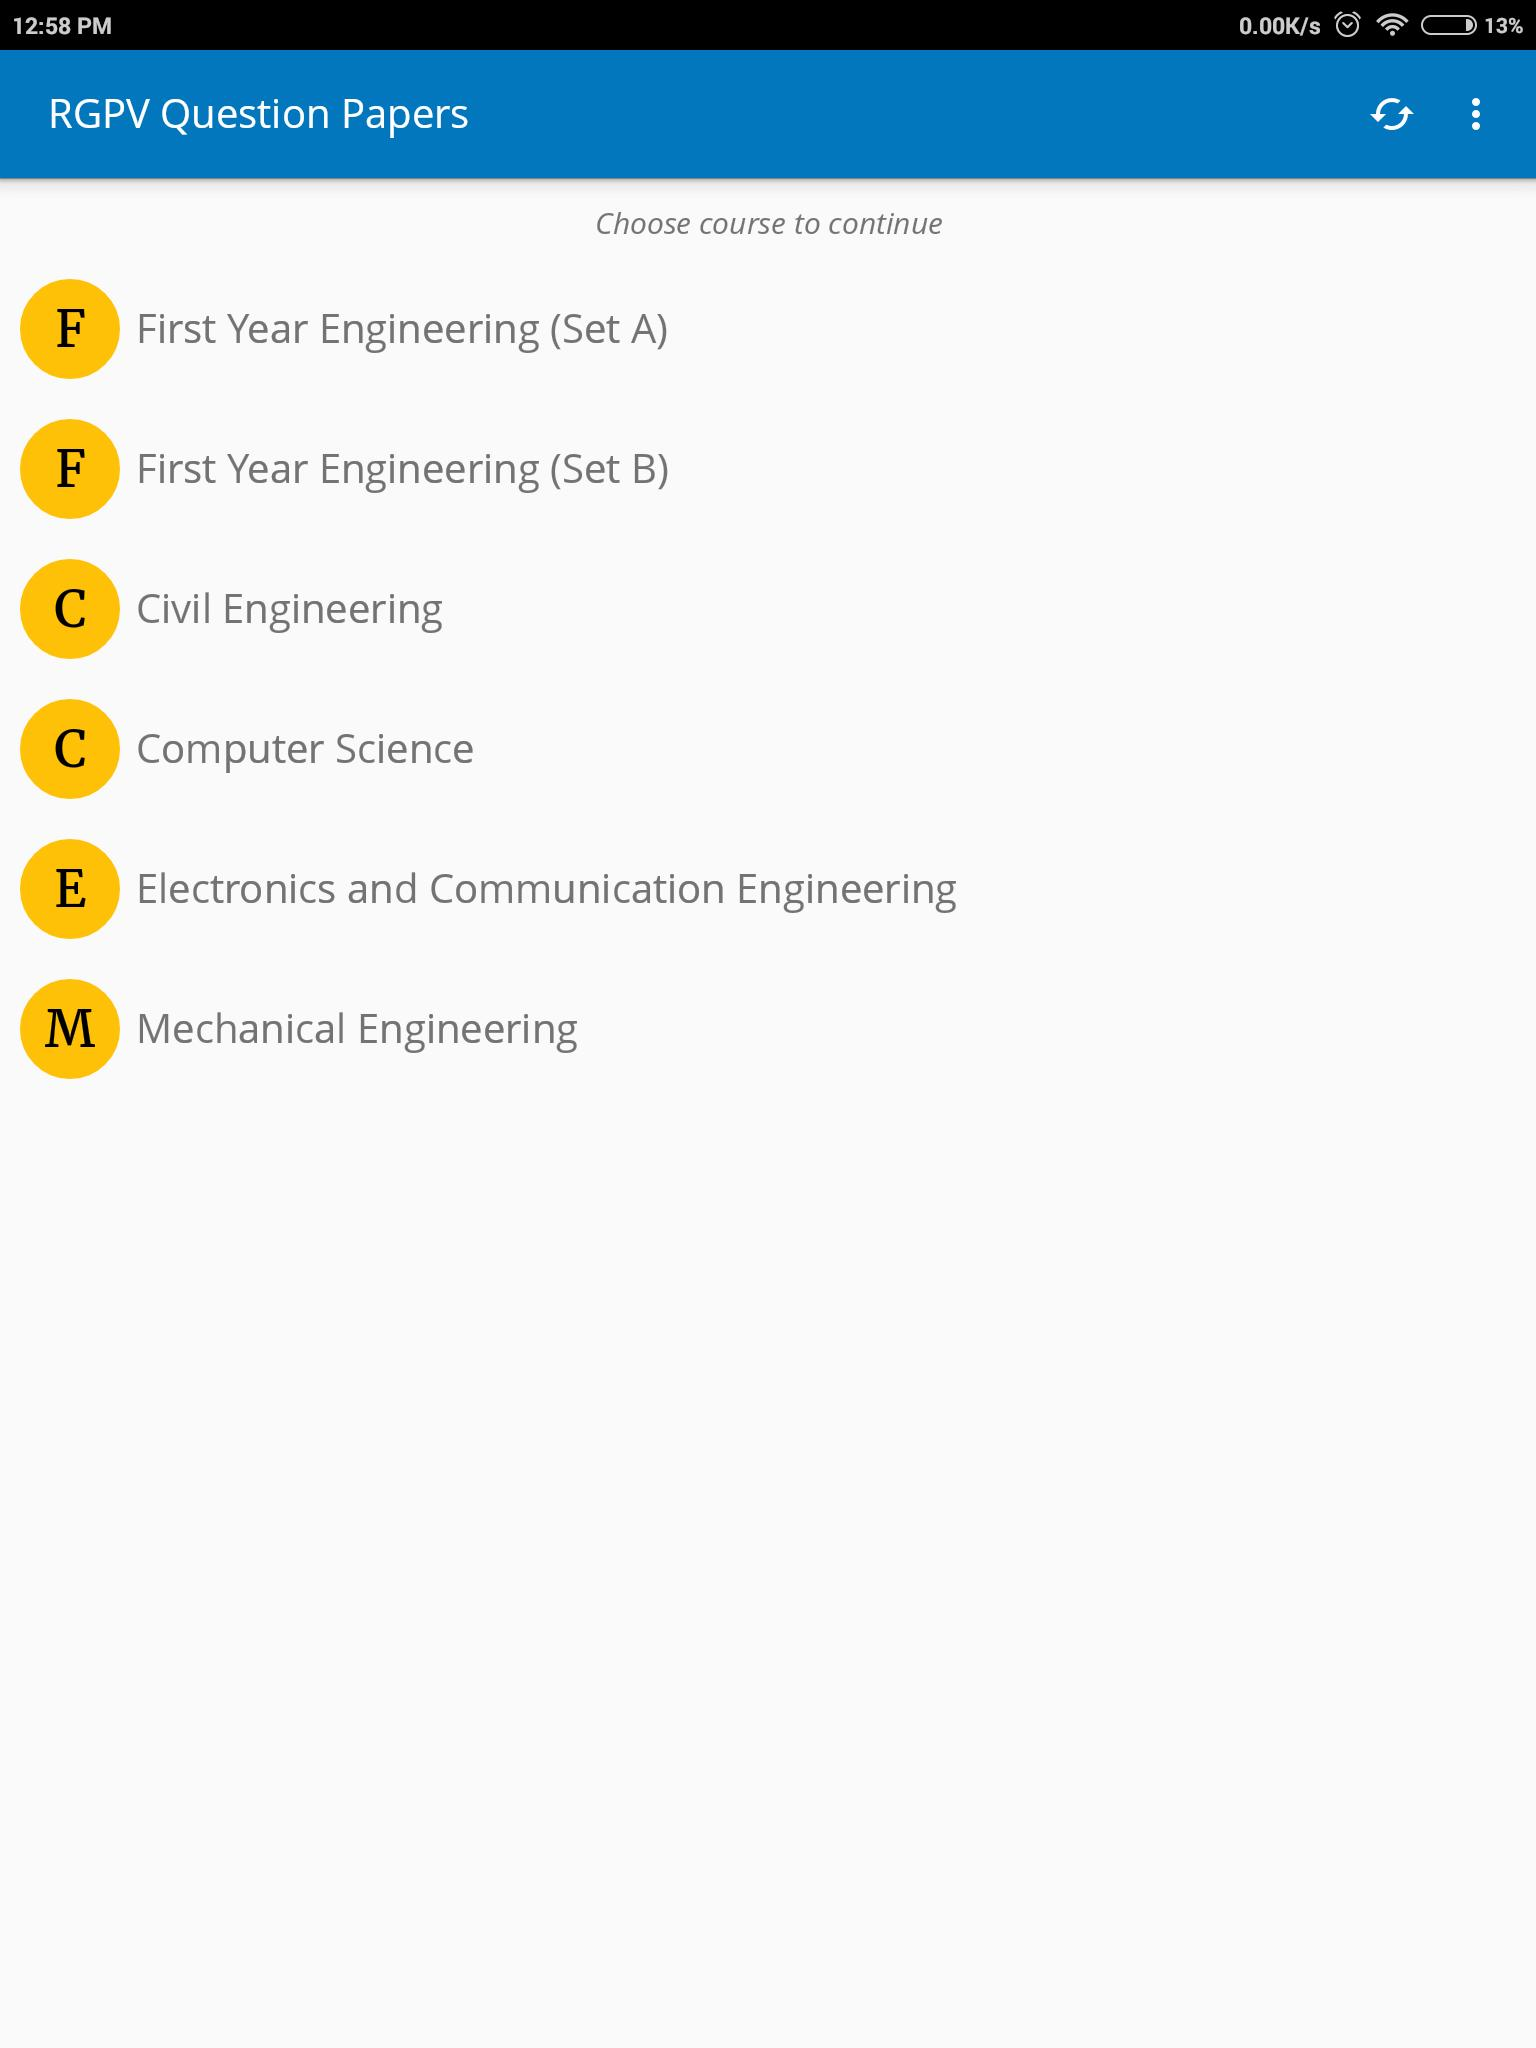 RGPV Question Papers for Android - APK Download